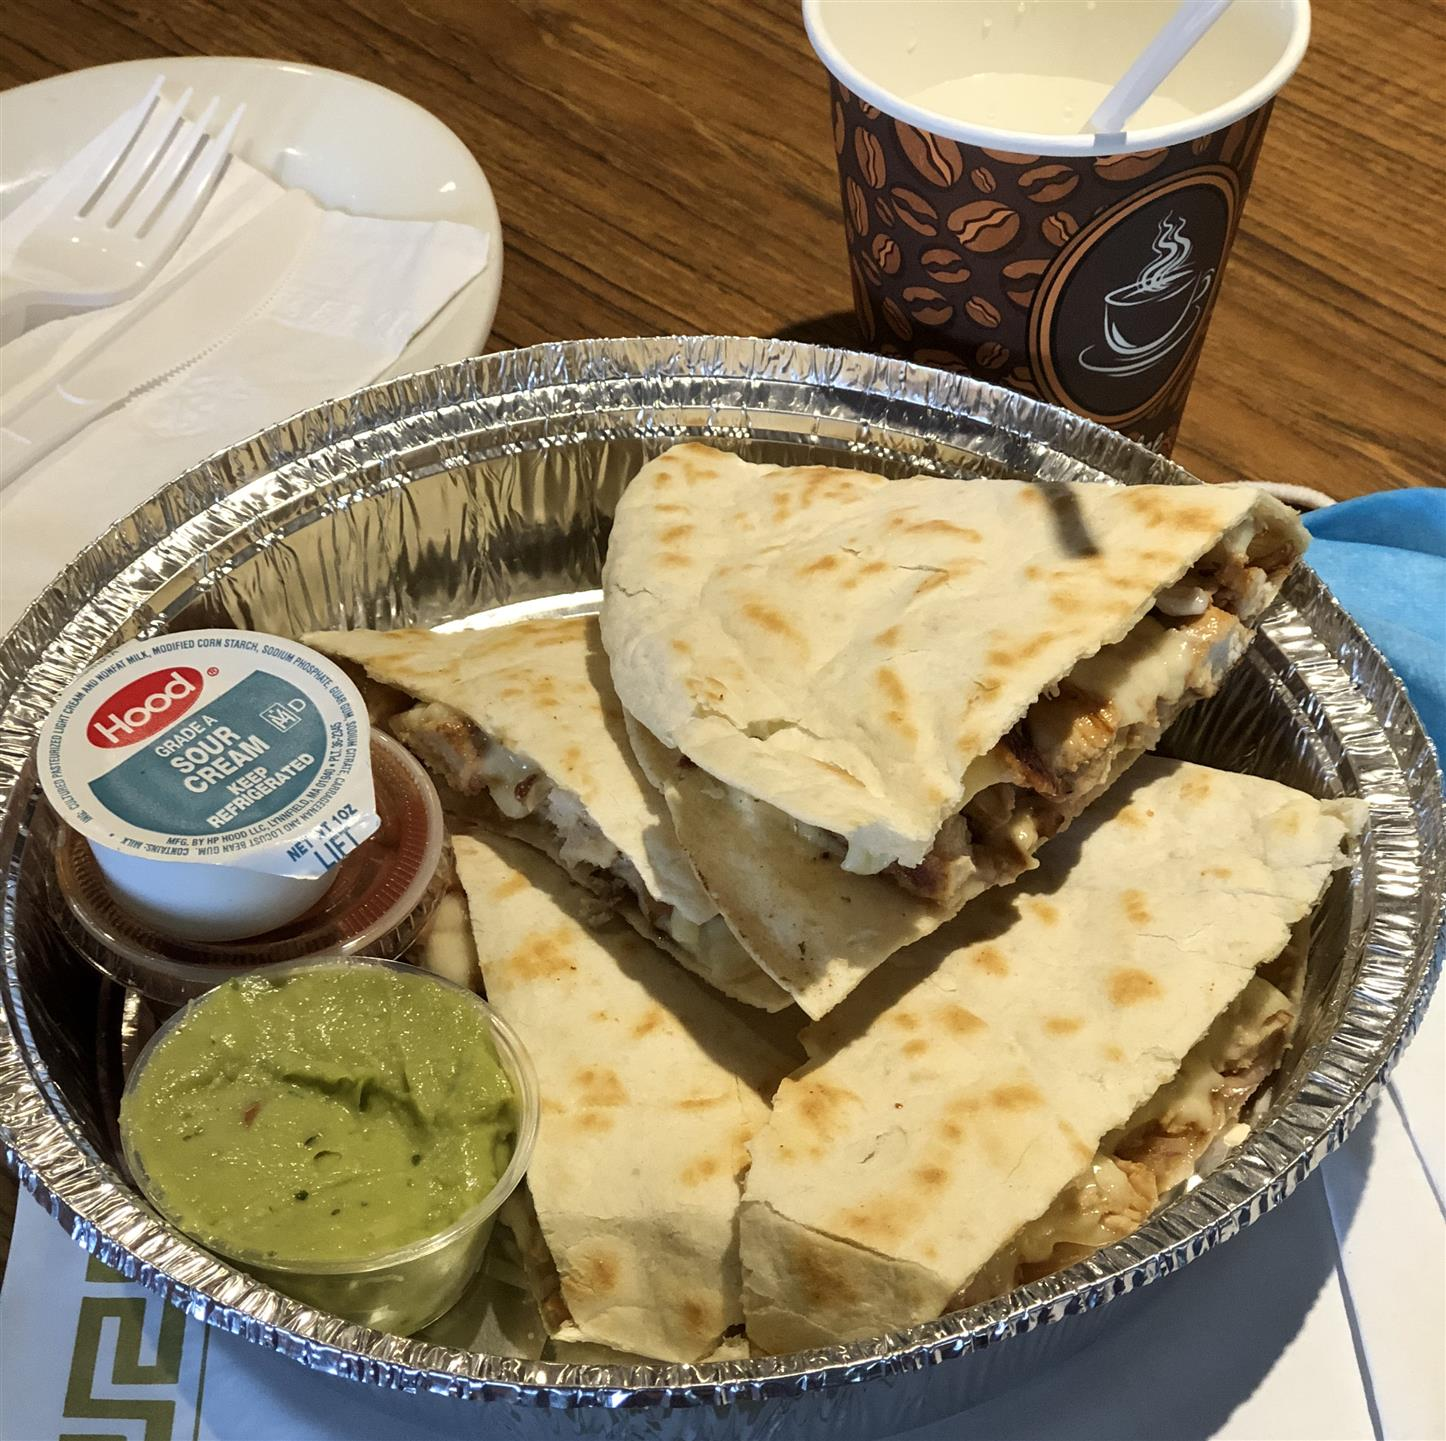 Quesadilla with guacamole In To Go container